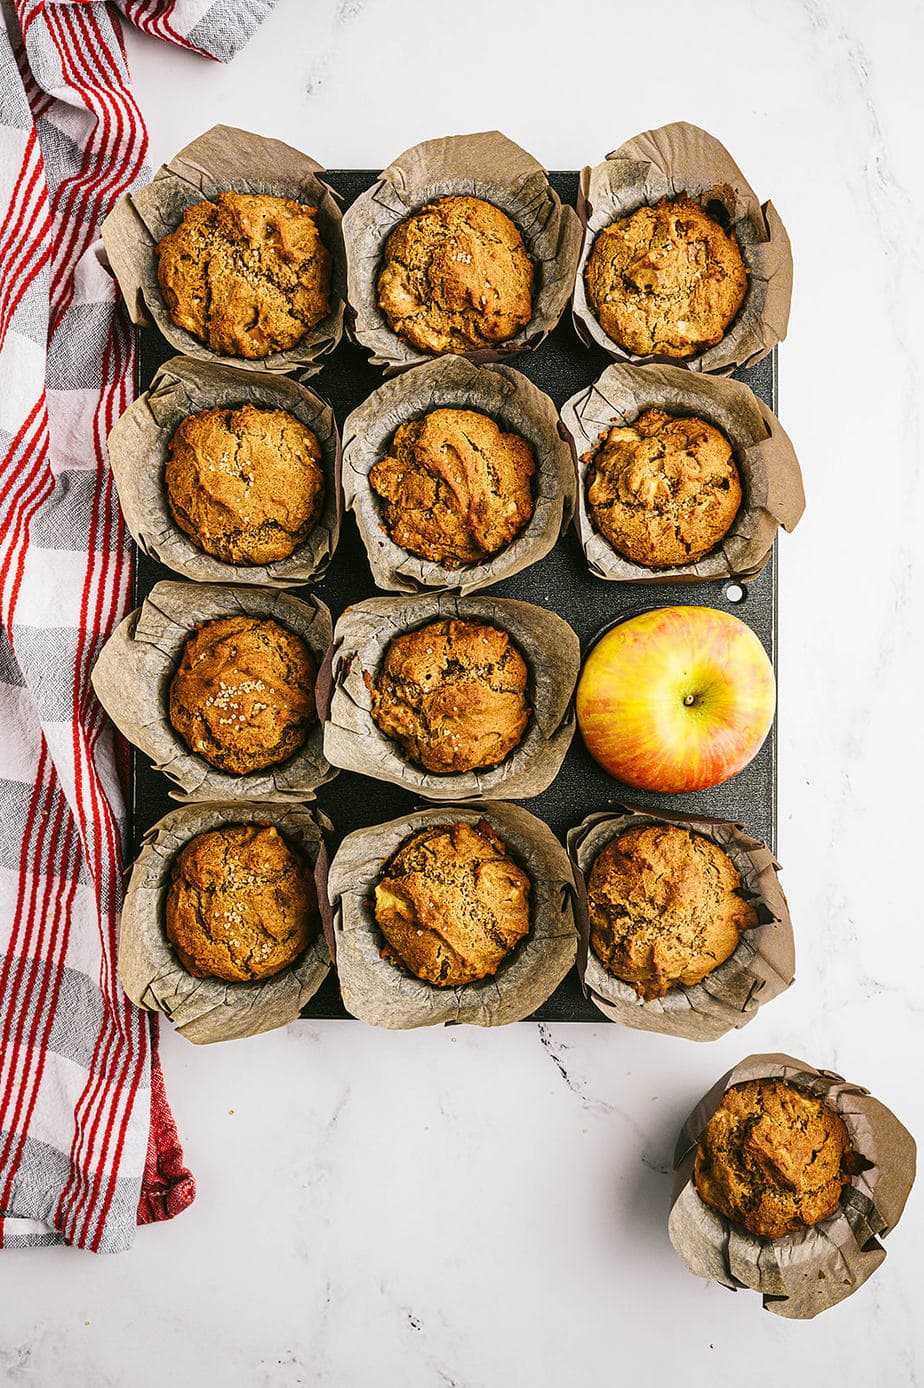 Overhead photo: muffin tin full of cooked muffins with a whole apple taking one's place.